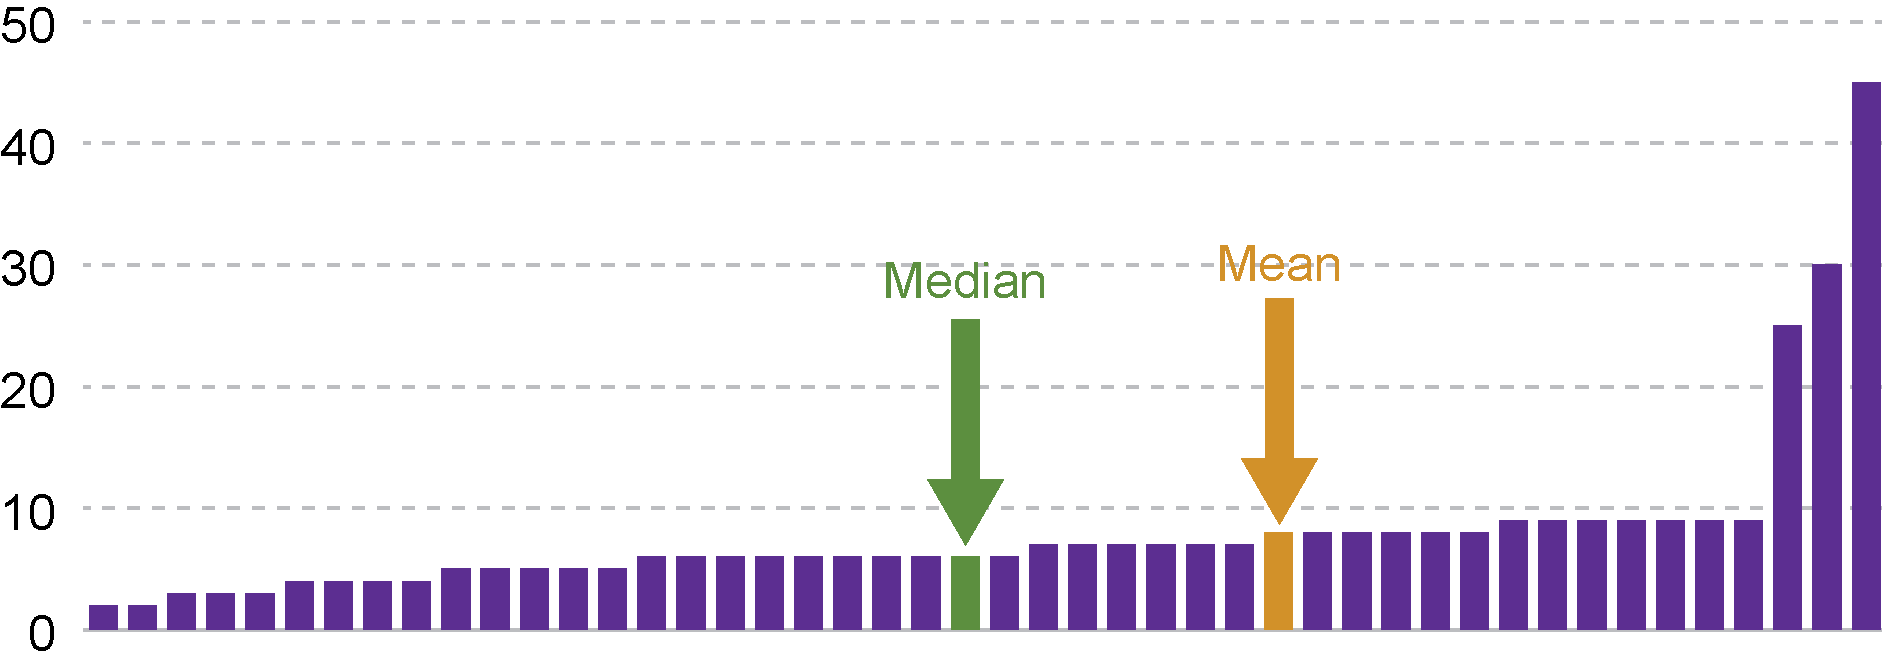 Comparison of the median and mean value for a set of numbers.